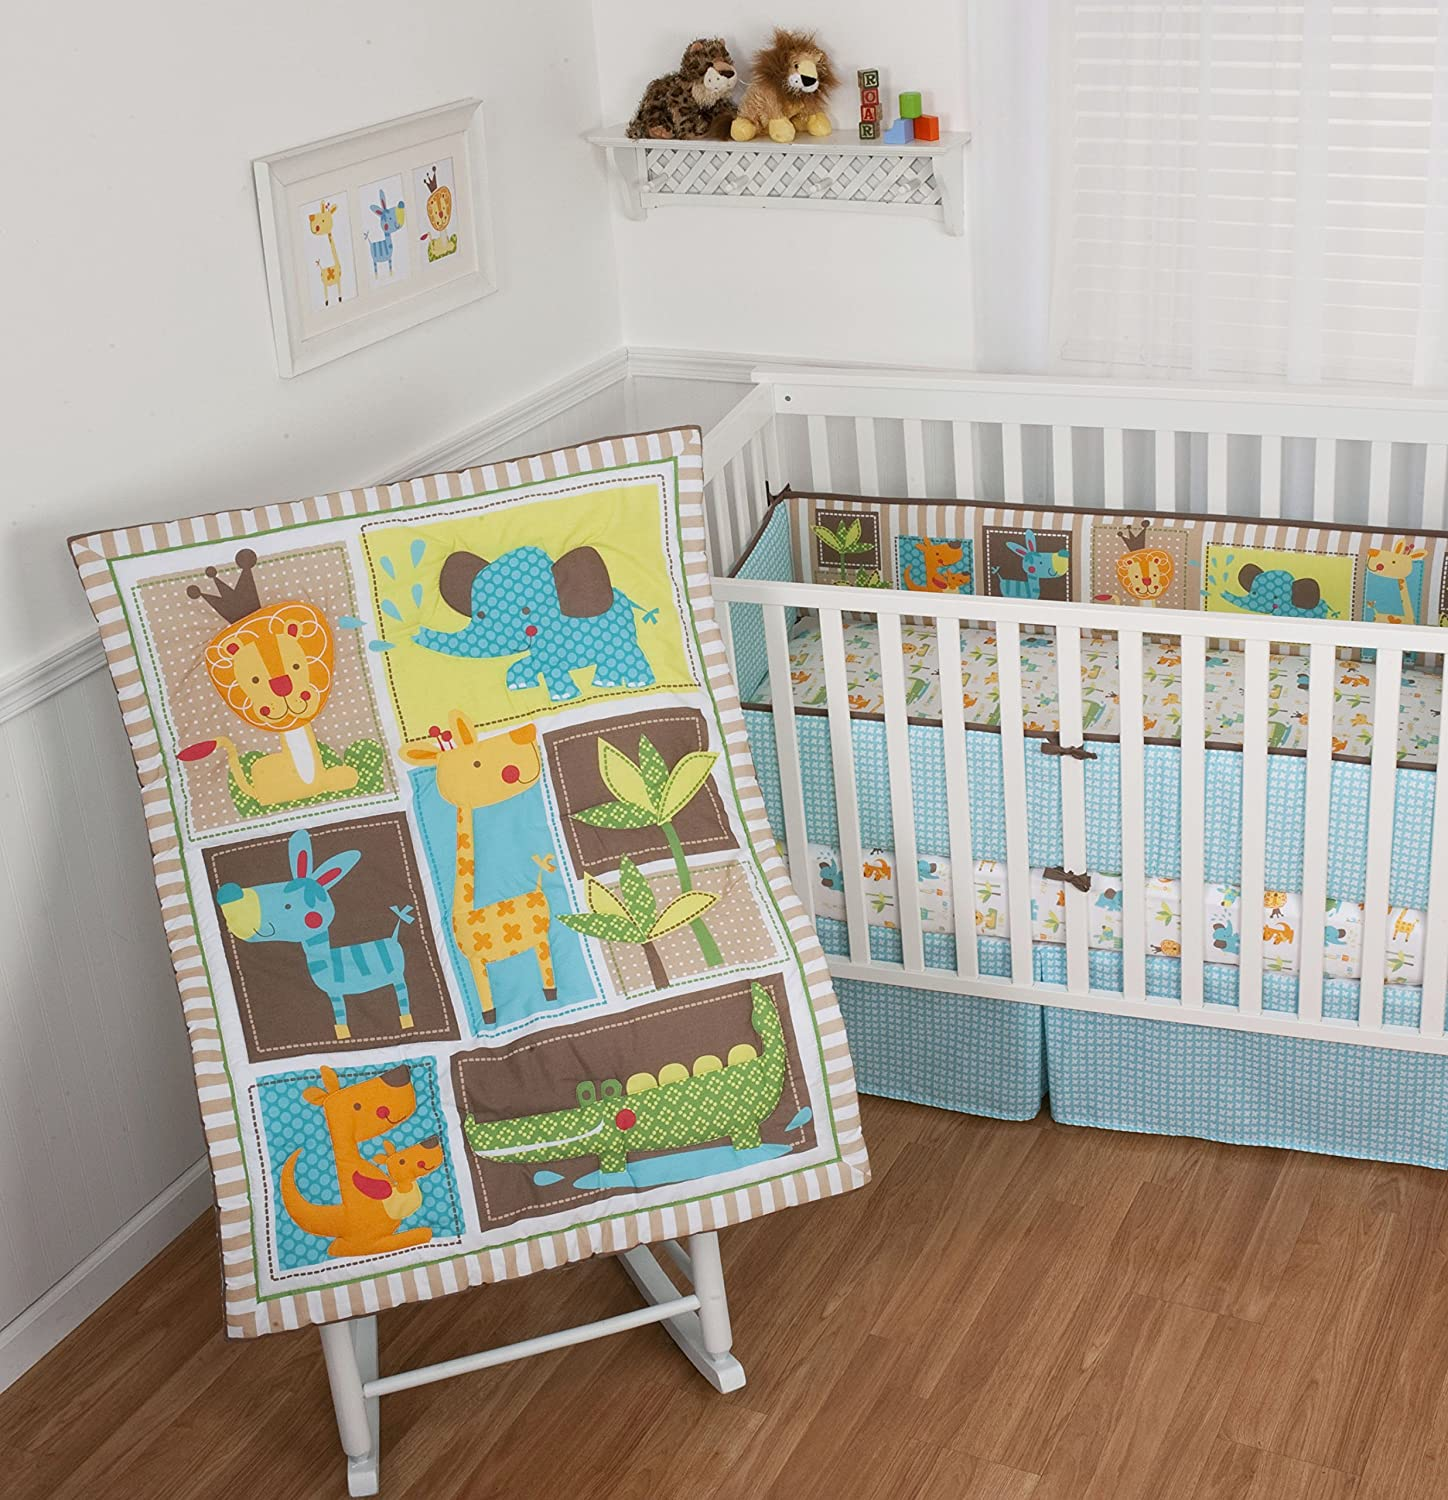 Sumersault King of the Jungle Baby Bedding